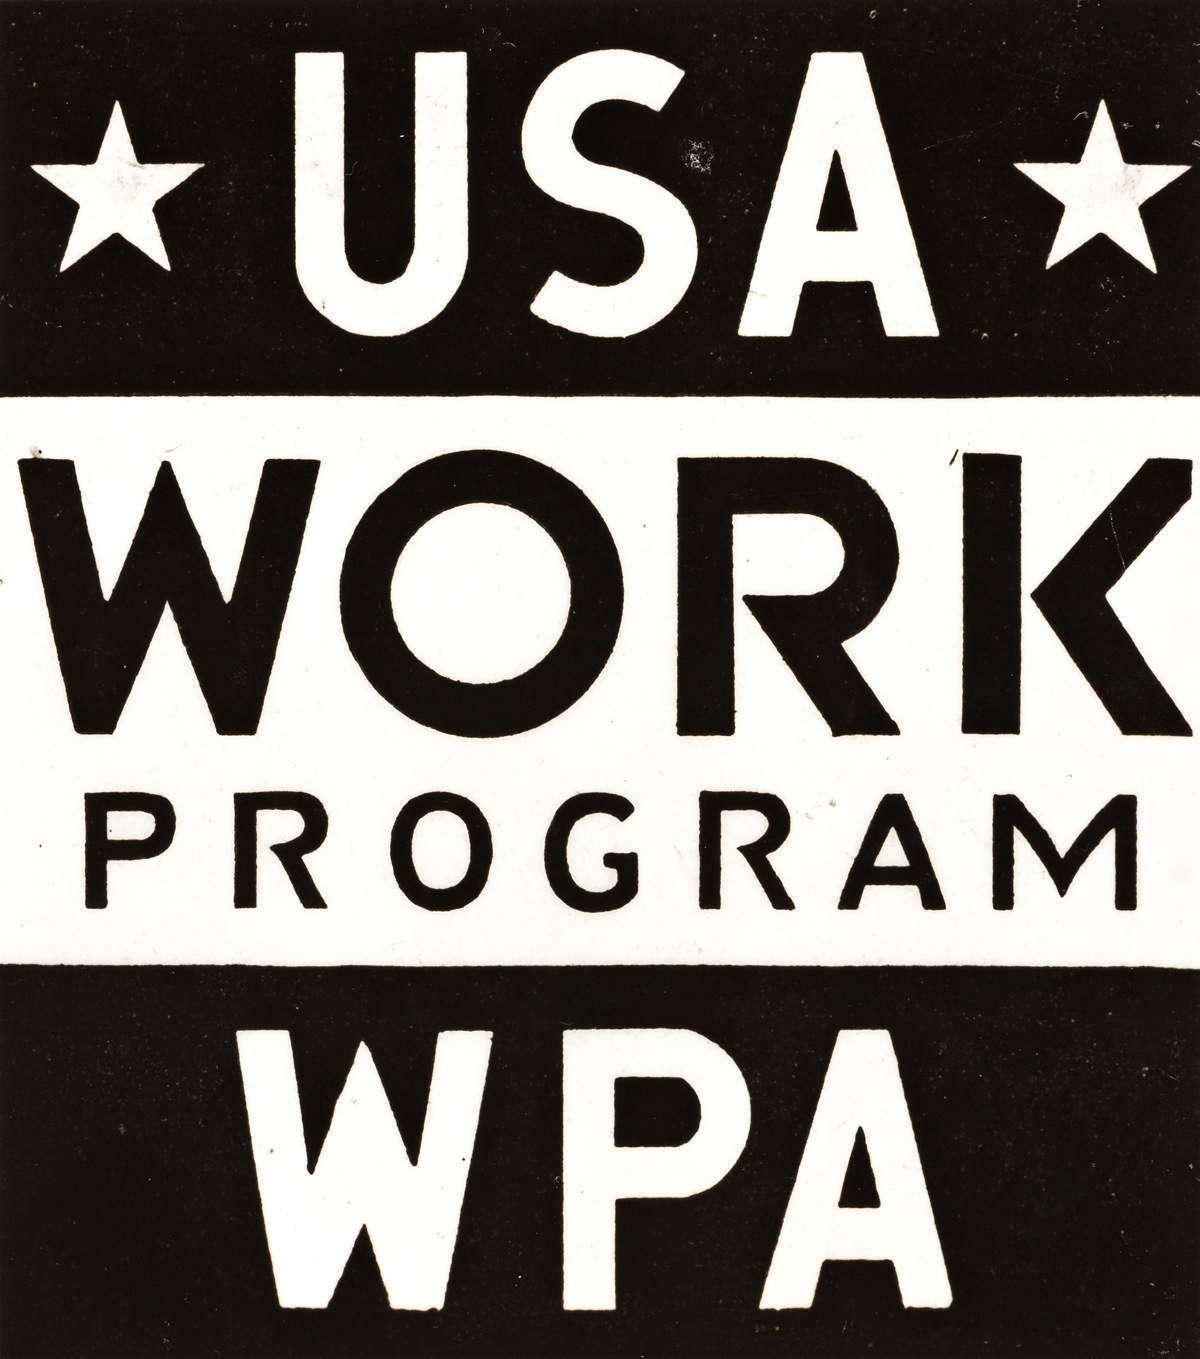 (WPA PRESS PRINTS) A selection of 12 vintage press and publicity photographs documenting the WPA, many with WPA signage, as well as FDR